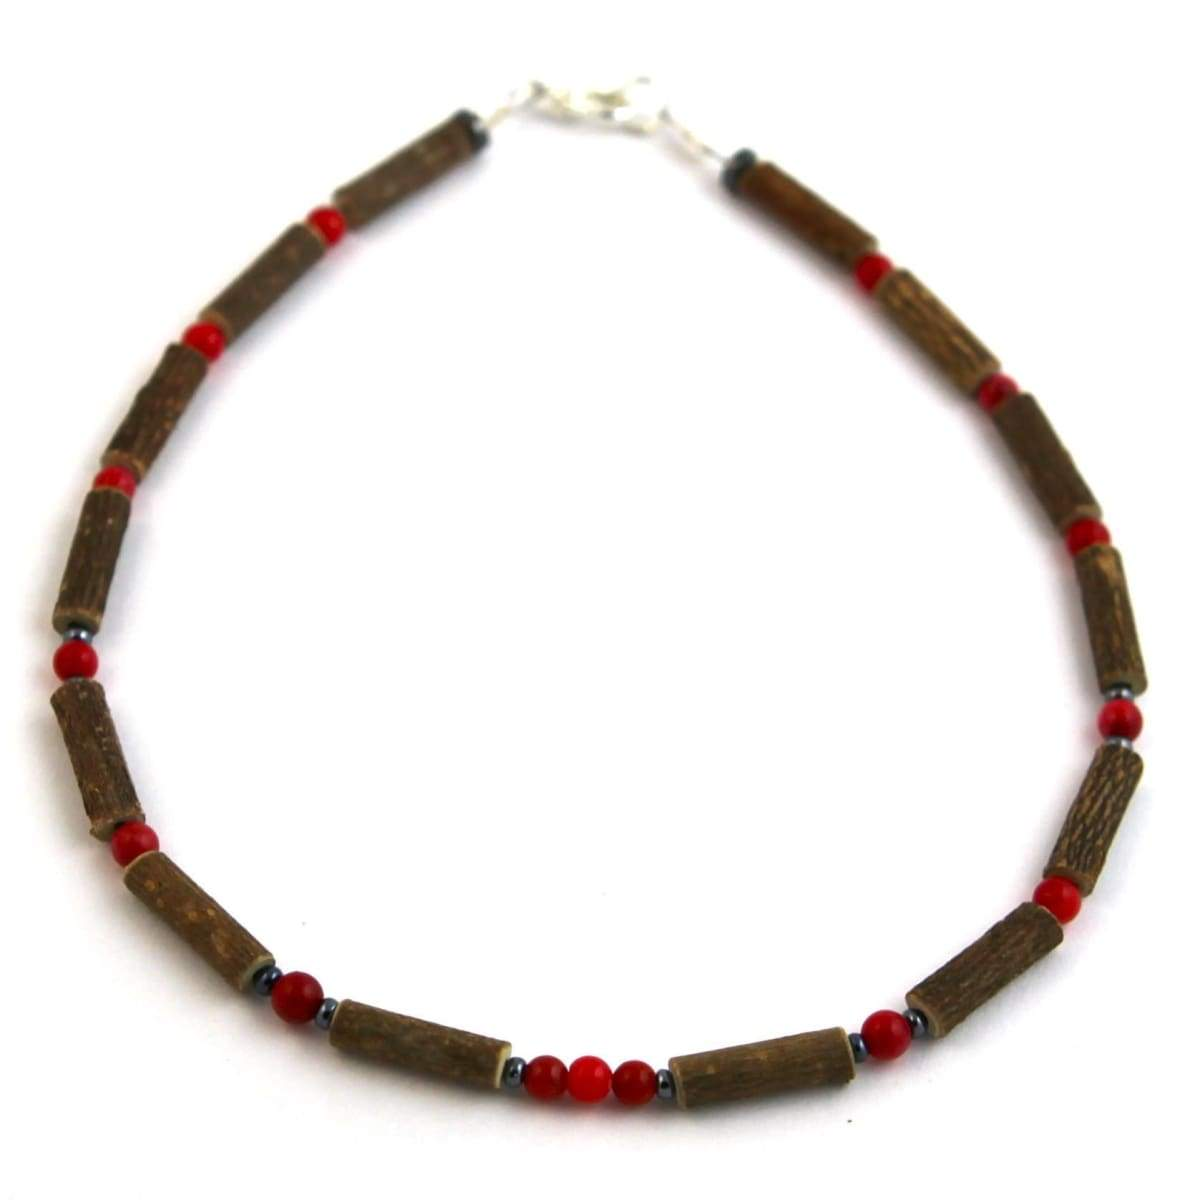 Hazel-Gemstone Coral - 11 Necklace - Lobster Claw Clasp - Hazelwood & Gemstone Jewelry